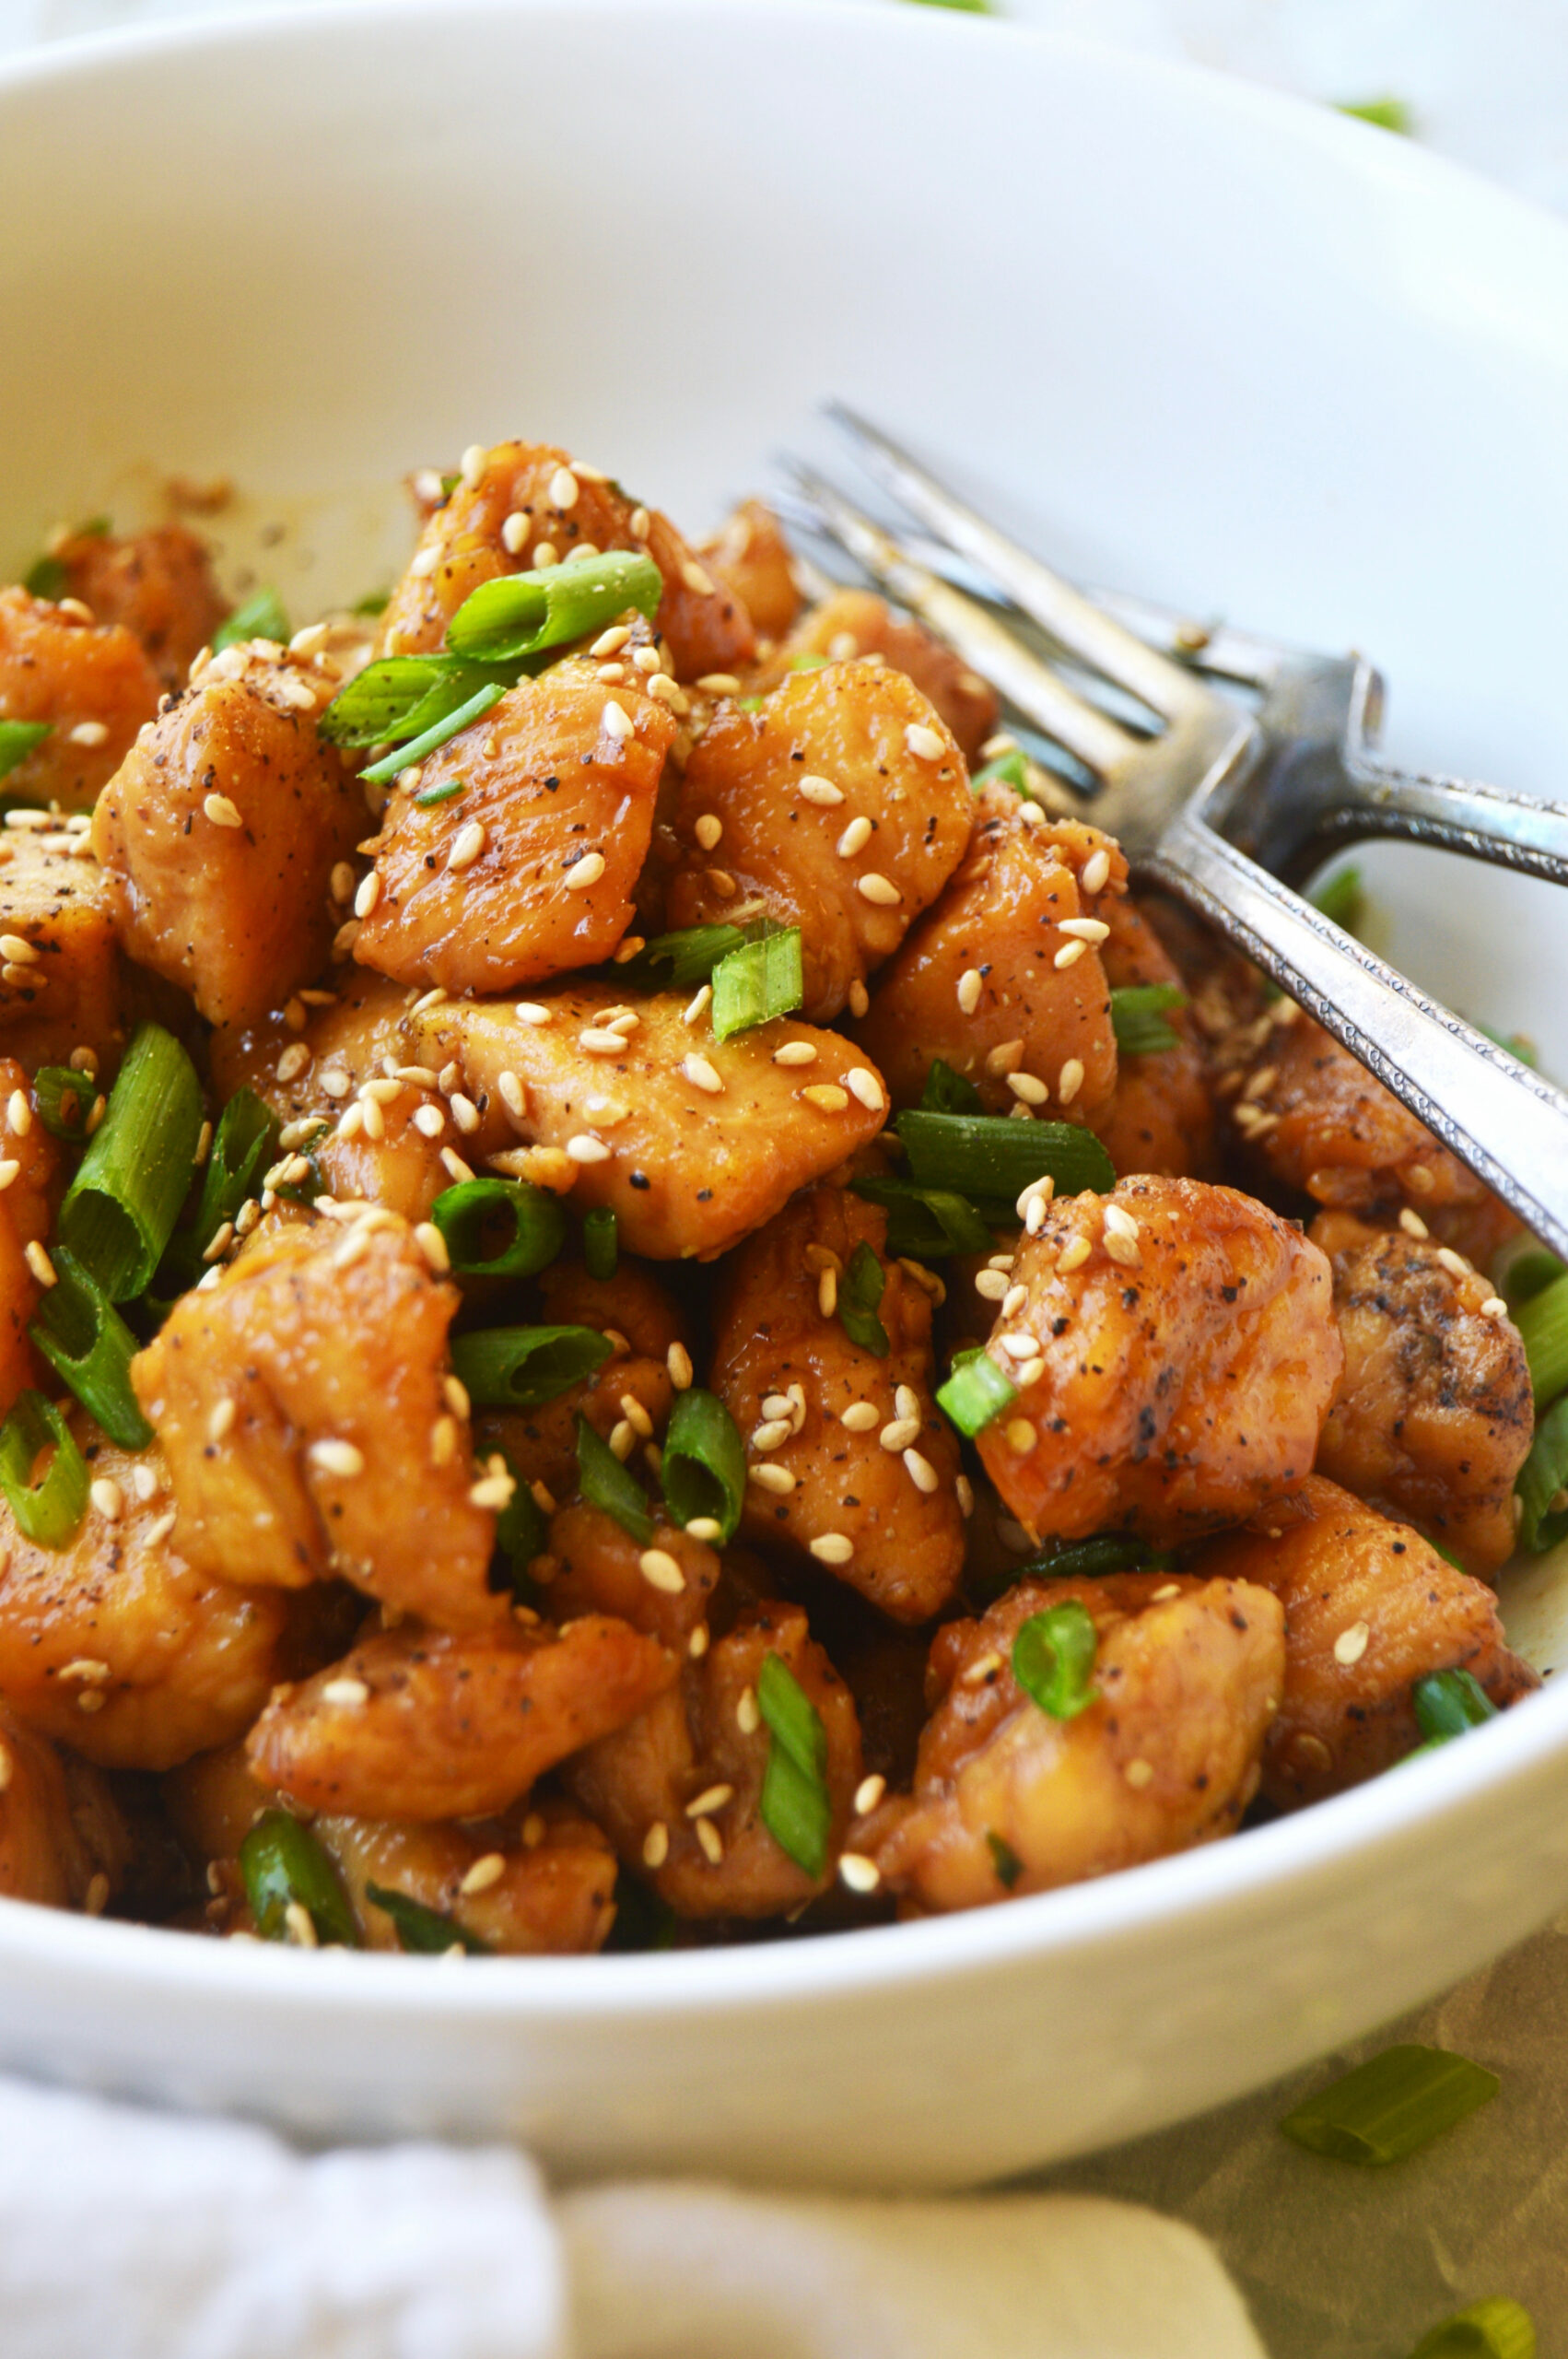 Quick And Simple 14 Ingredient Teriyaki Chicken - Chicken Recipes Quick